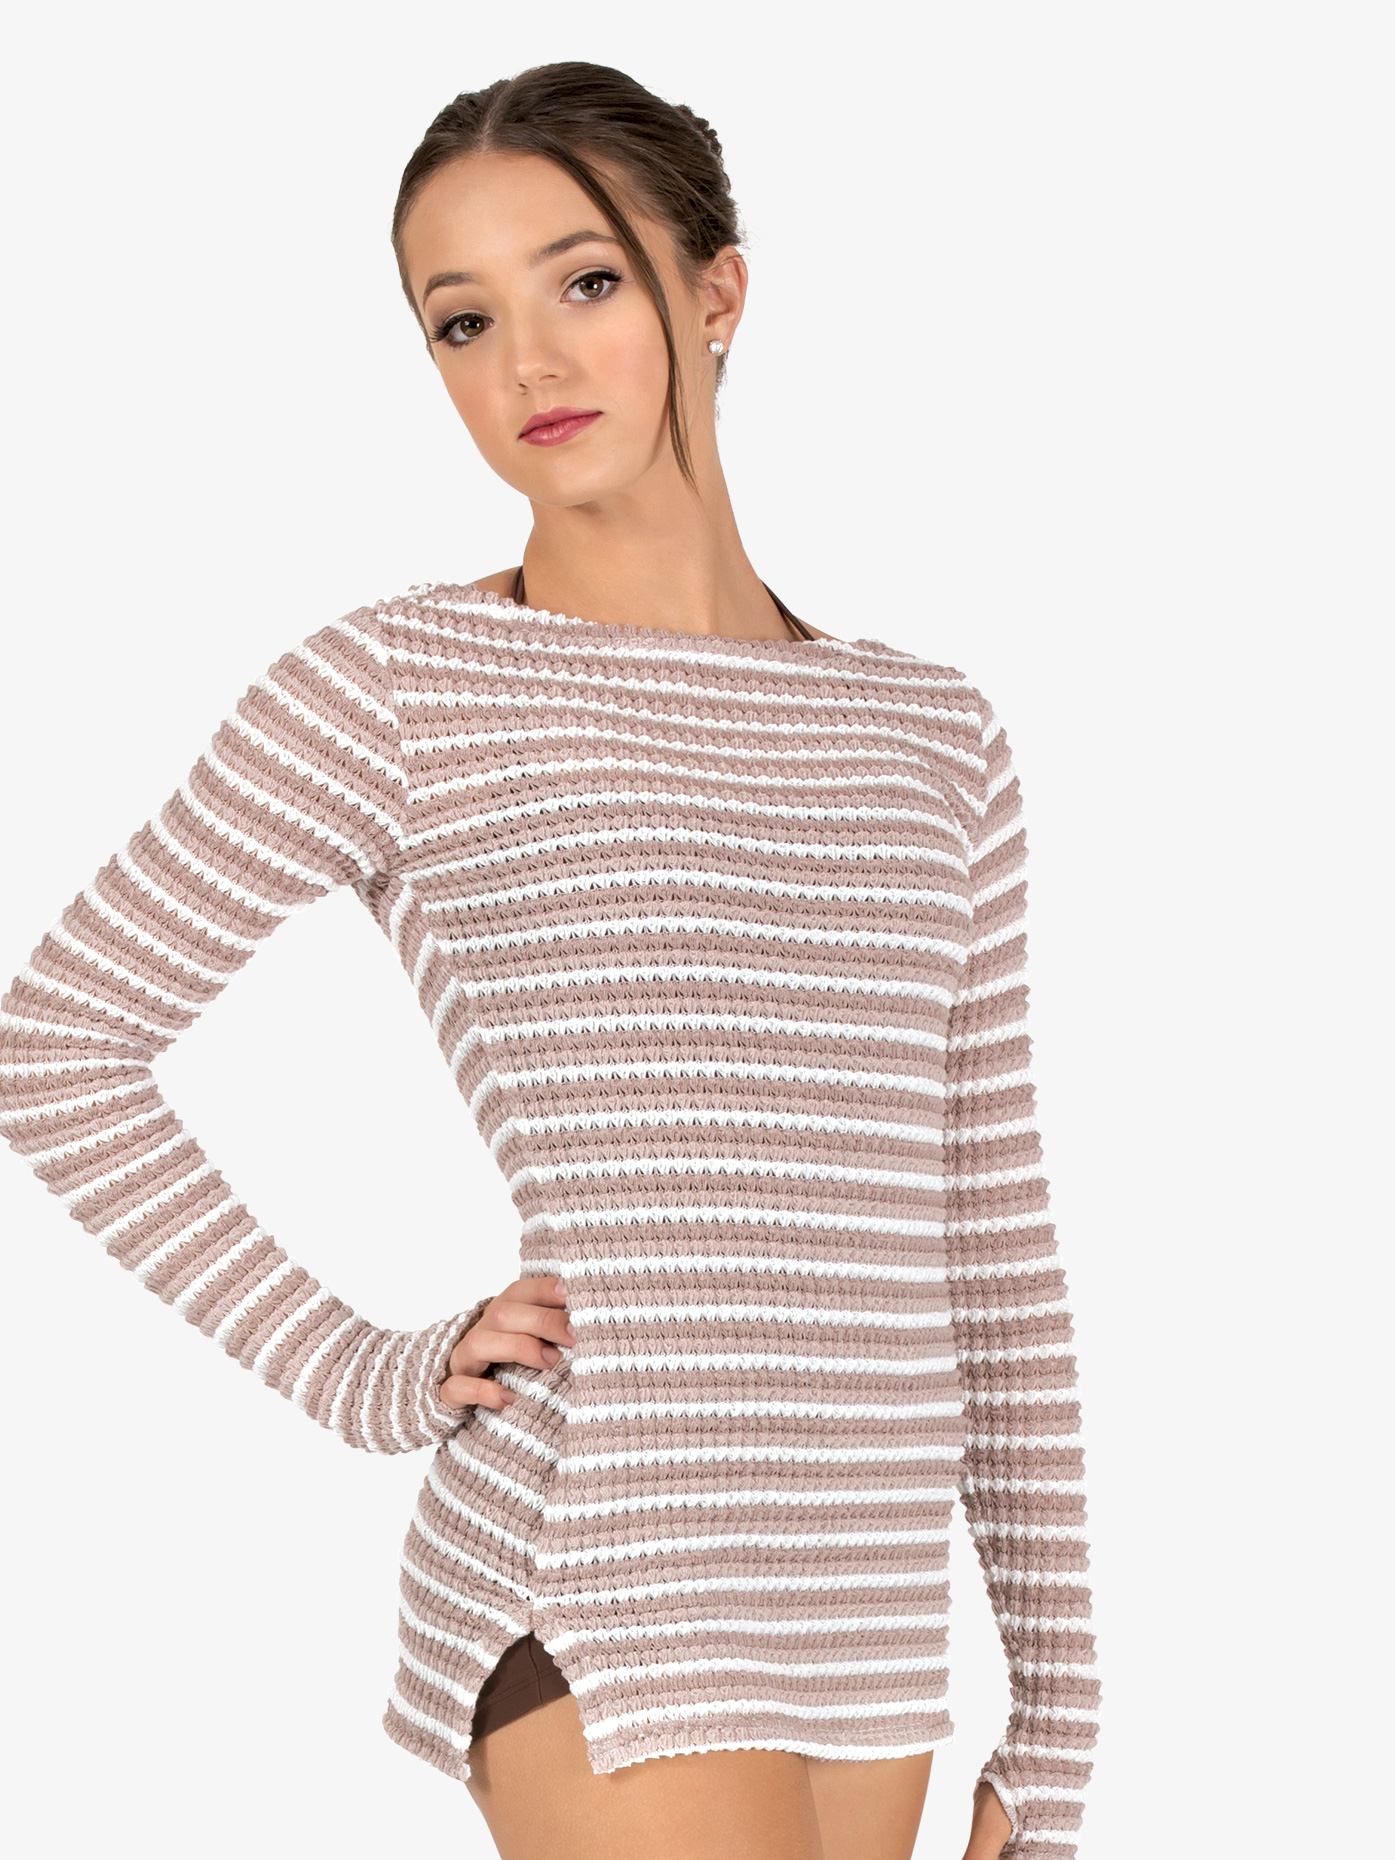 Natalie Womens Striped Knit Warm Up Long Sleeve Tunic N9102